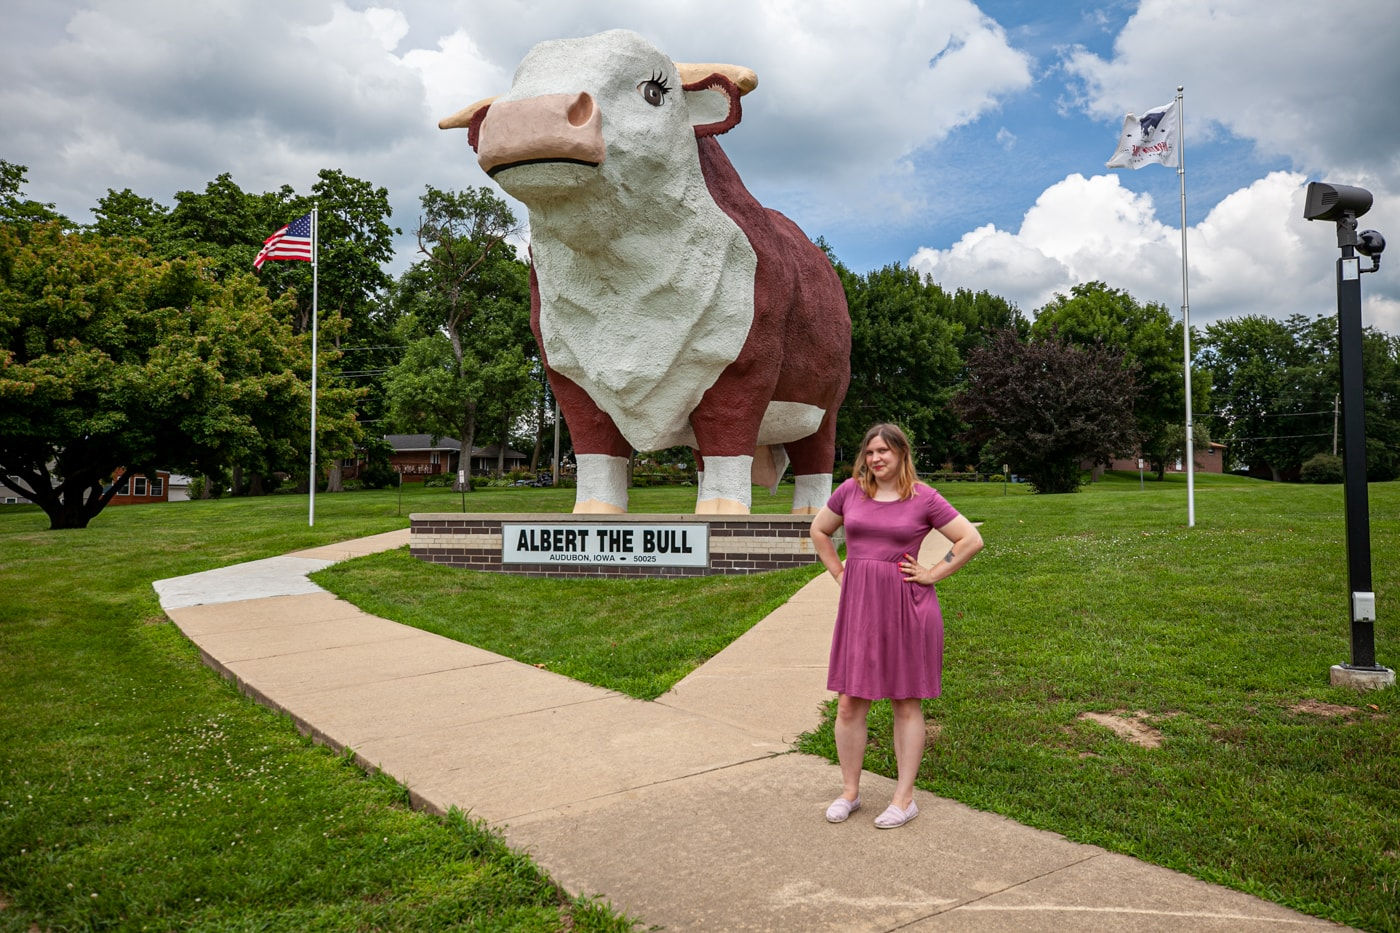 Albert the Bull - the World's Largest Bull in Audubon, Iowa | Iowa Roadside Attractions